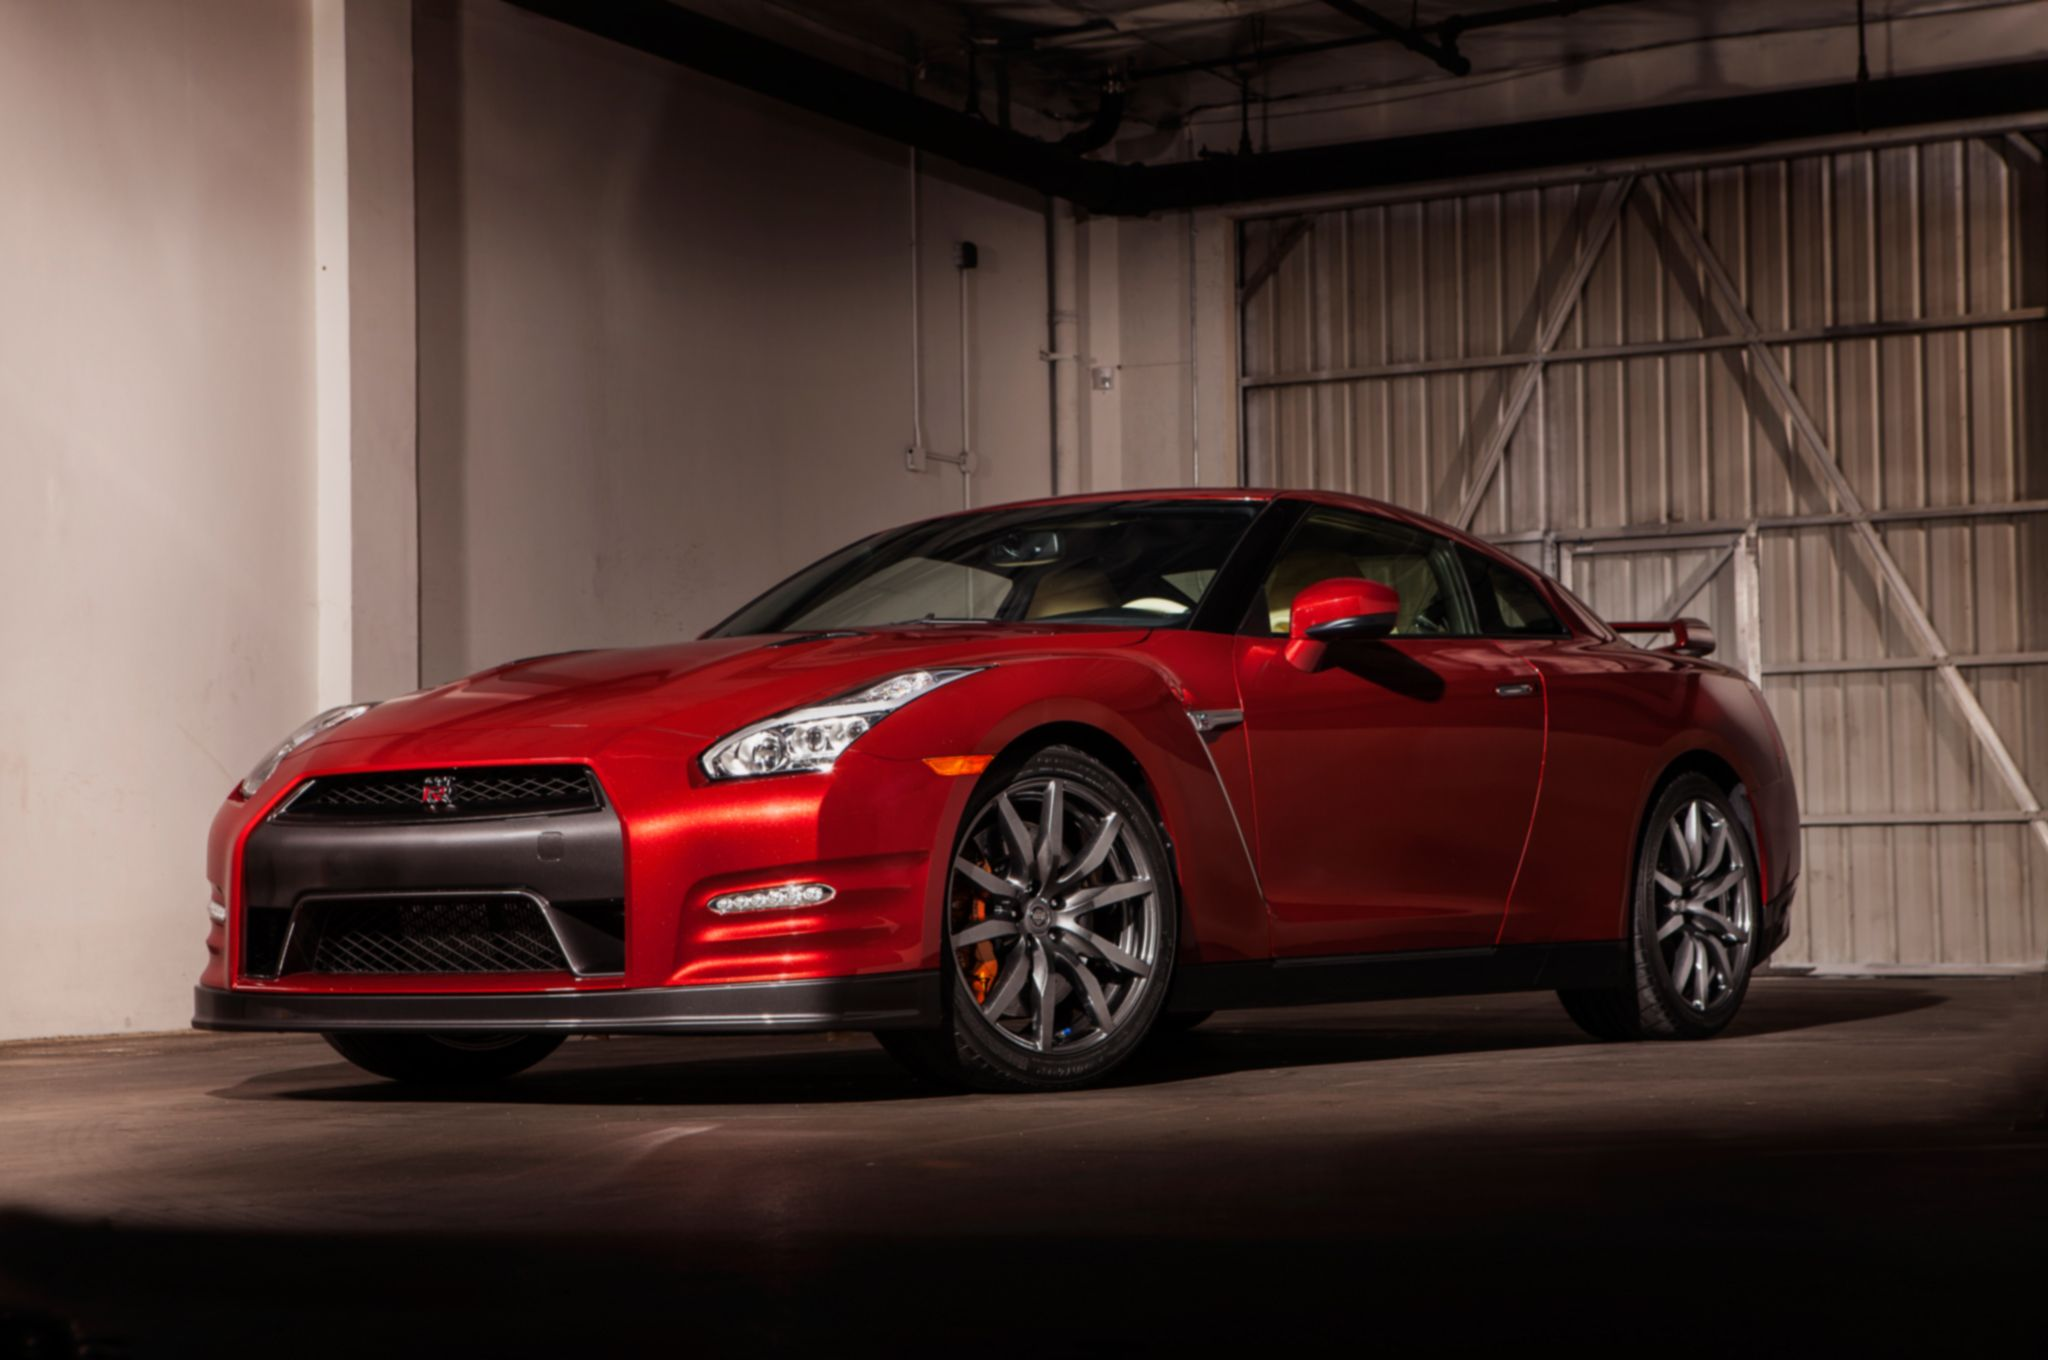 Cool Nissan Gtr Ams Alpha 12 0 60 Oh how I LUV cars